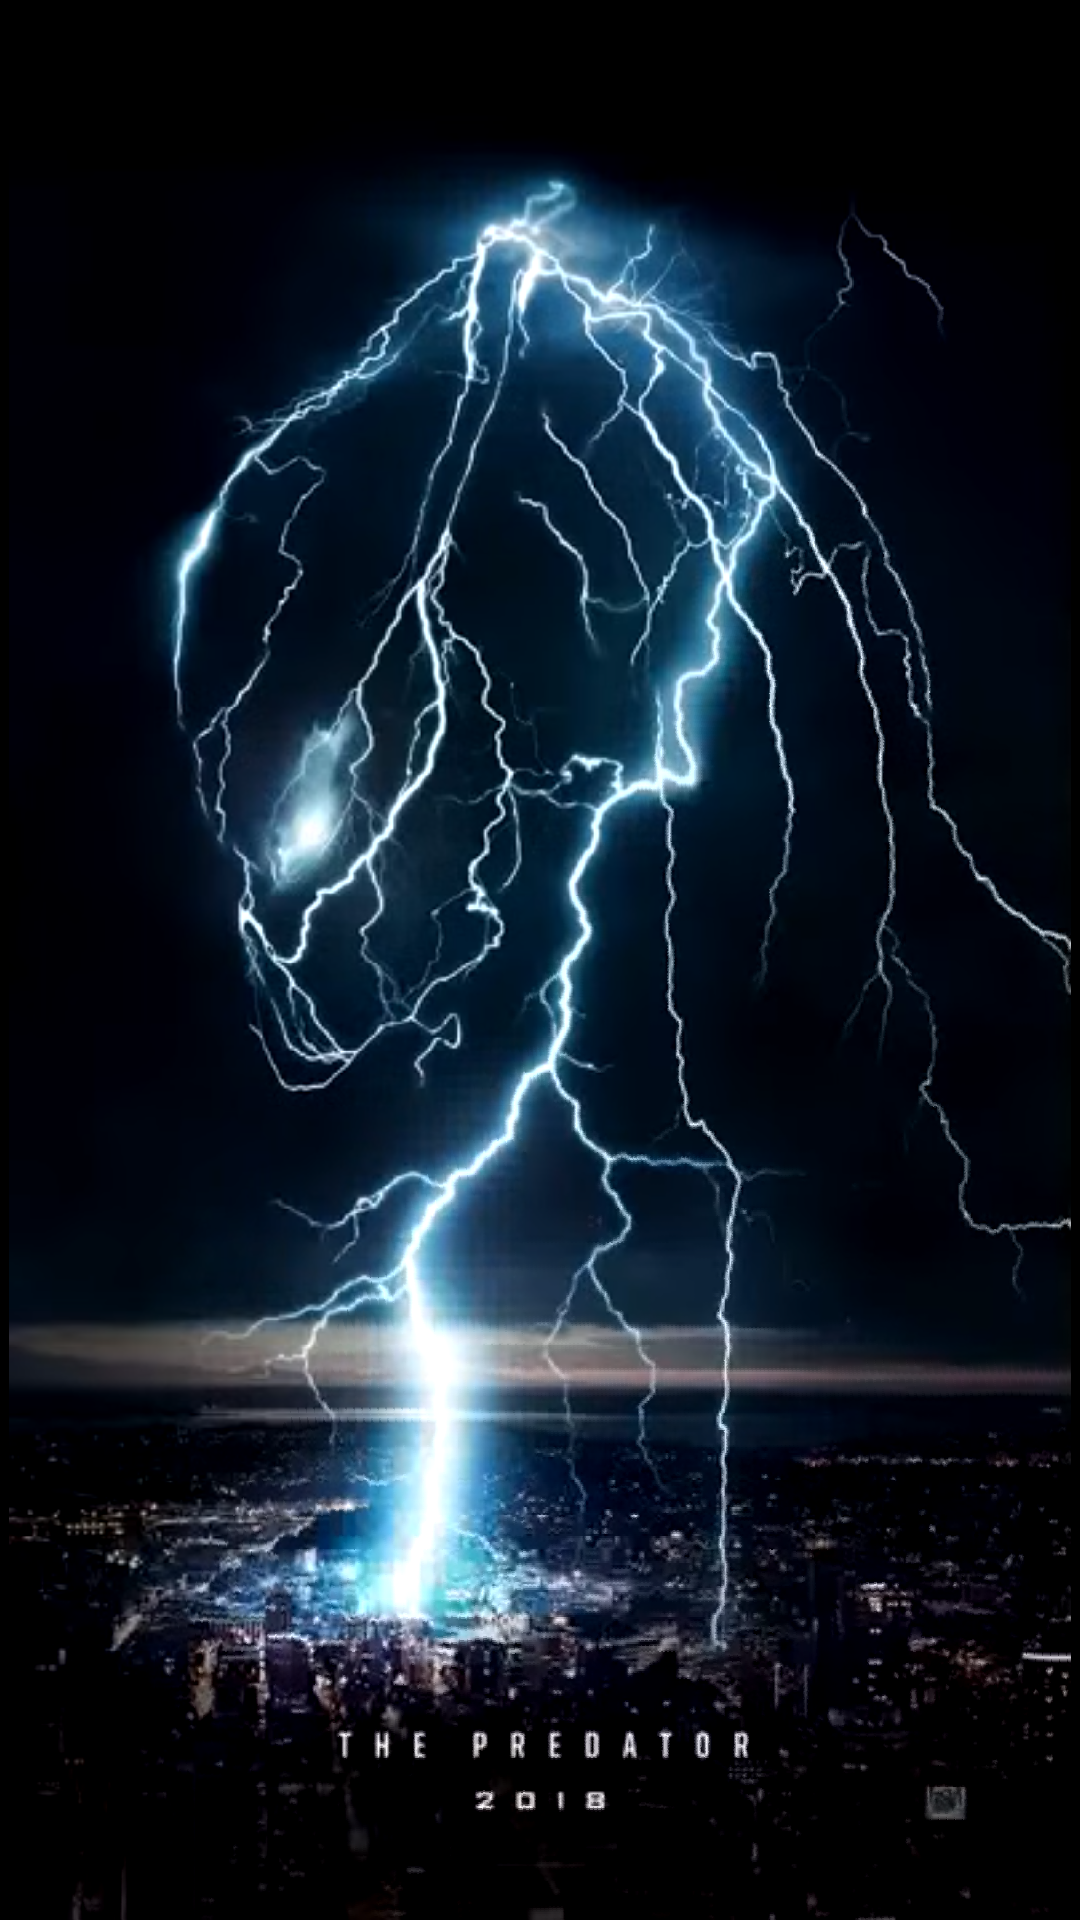 If youre a predator movie fan and wish to engage with other fans join in on the the predator forum its a great place to discuss upcoming predator movies